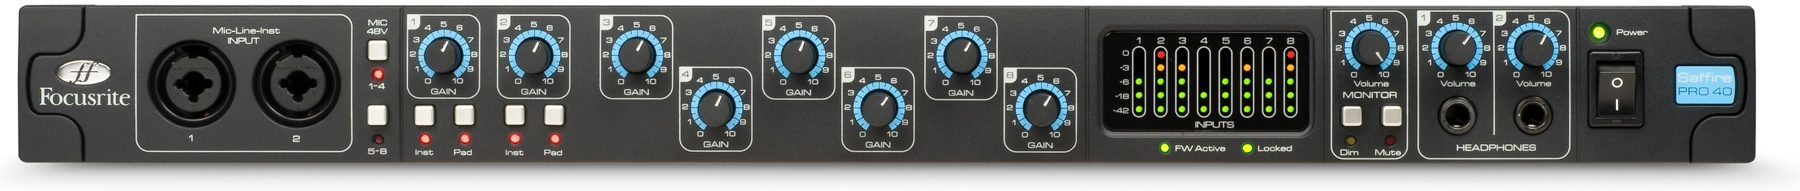 Focusrite SAFFIRE PRO 40 Professional 20 In/20 Out Firewire Interface w/ 8 Microphone Preamps